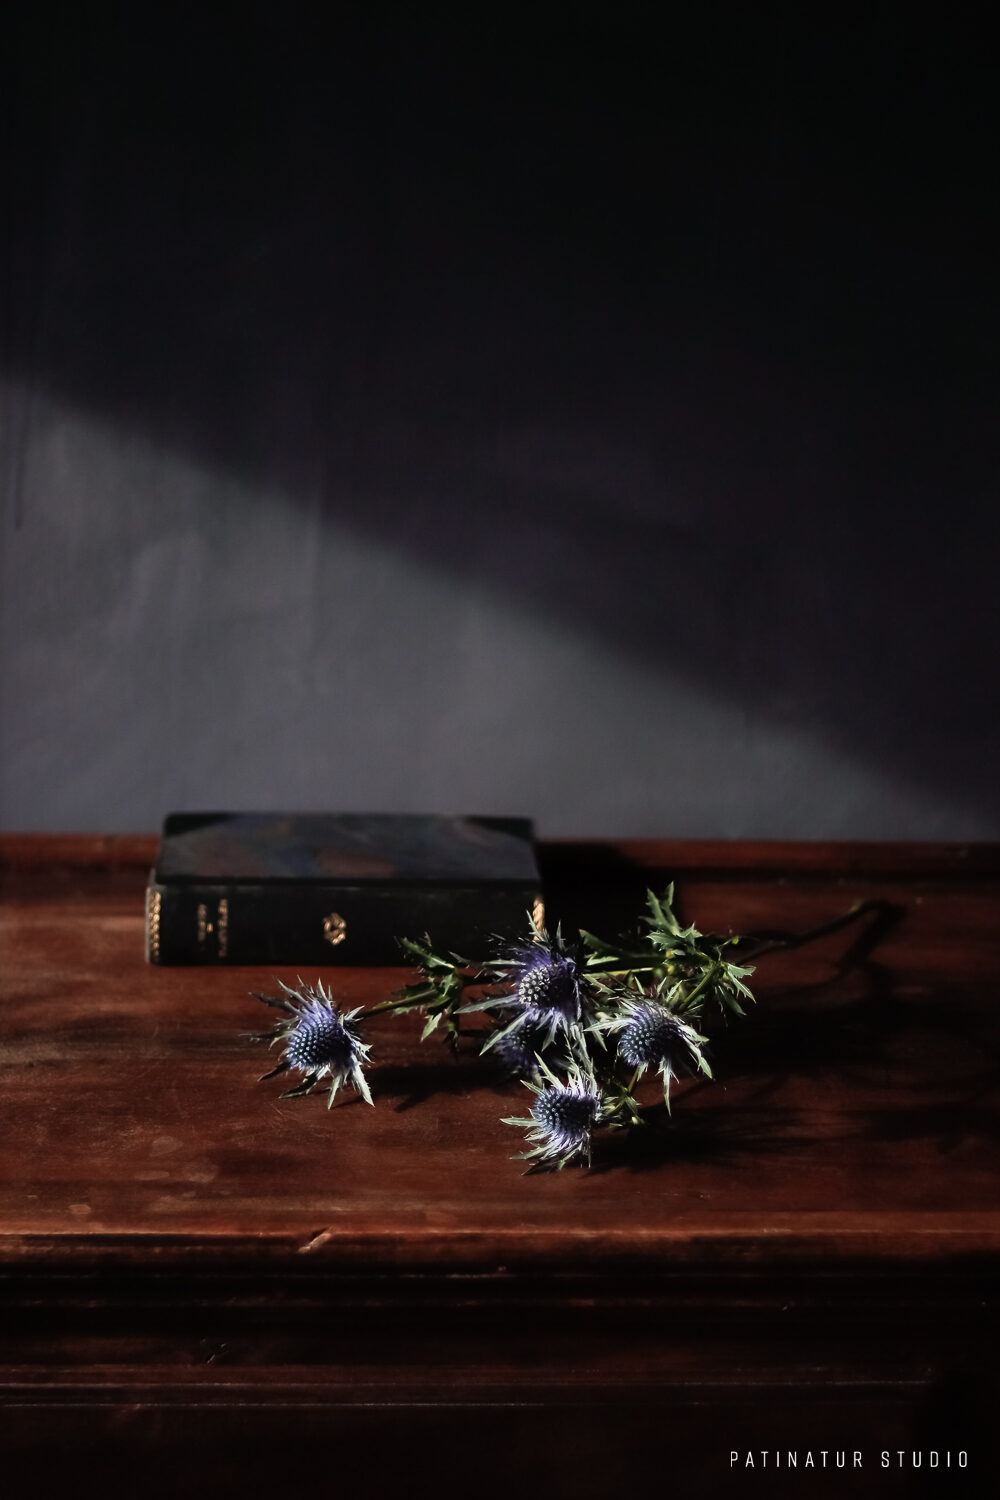 Photo Art | Dark and moody still life with flower and vintage edition of Tolstoy's The Devil